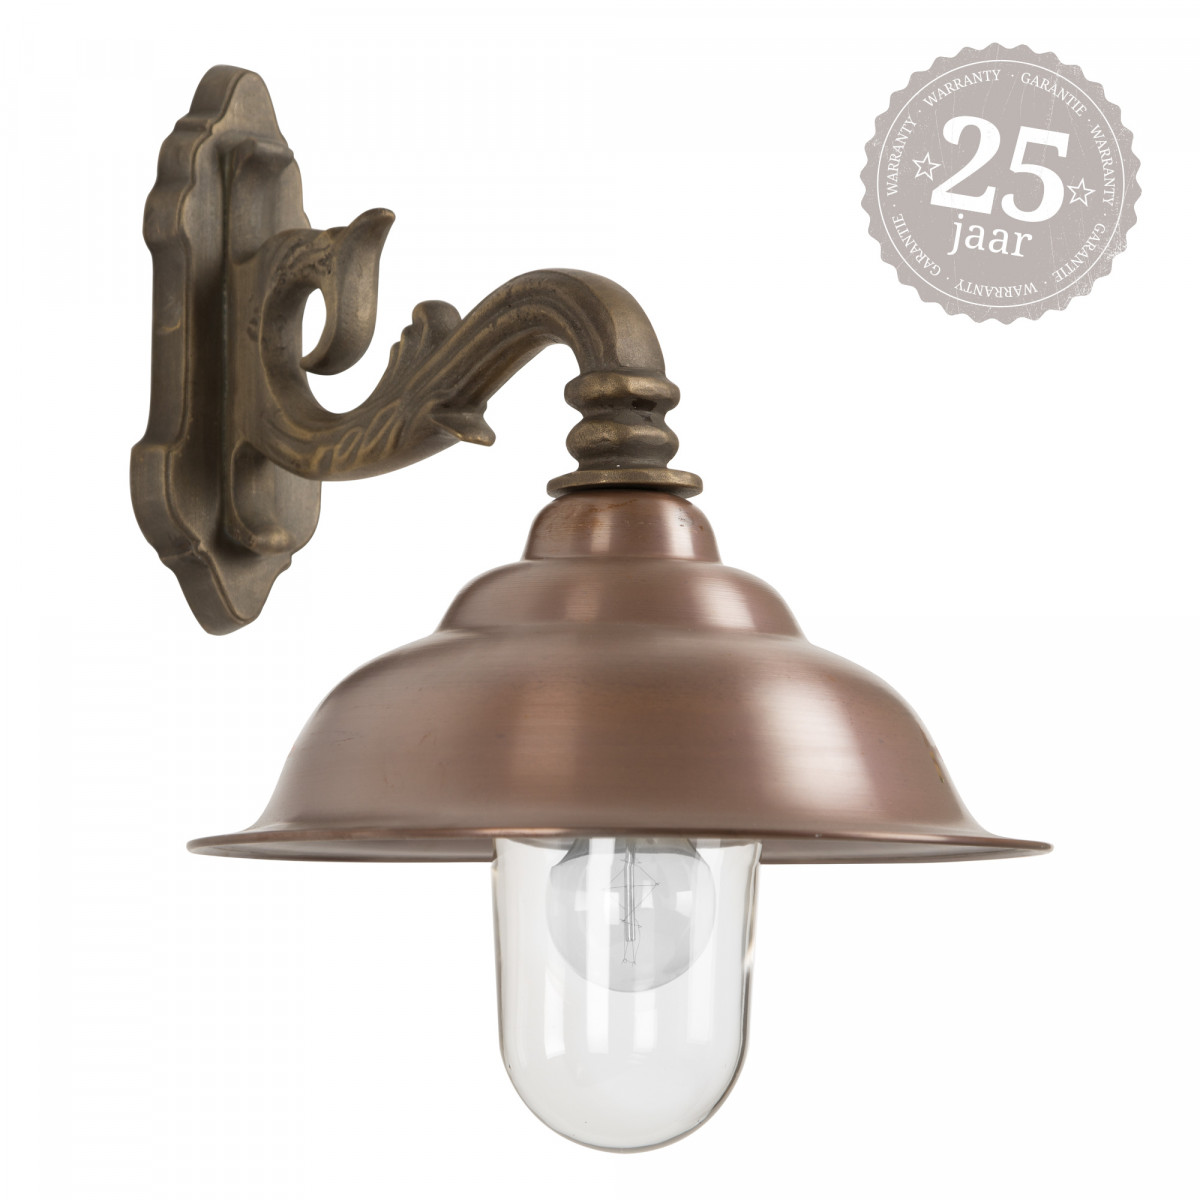 Buitenlamp Chateau 2 Brons